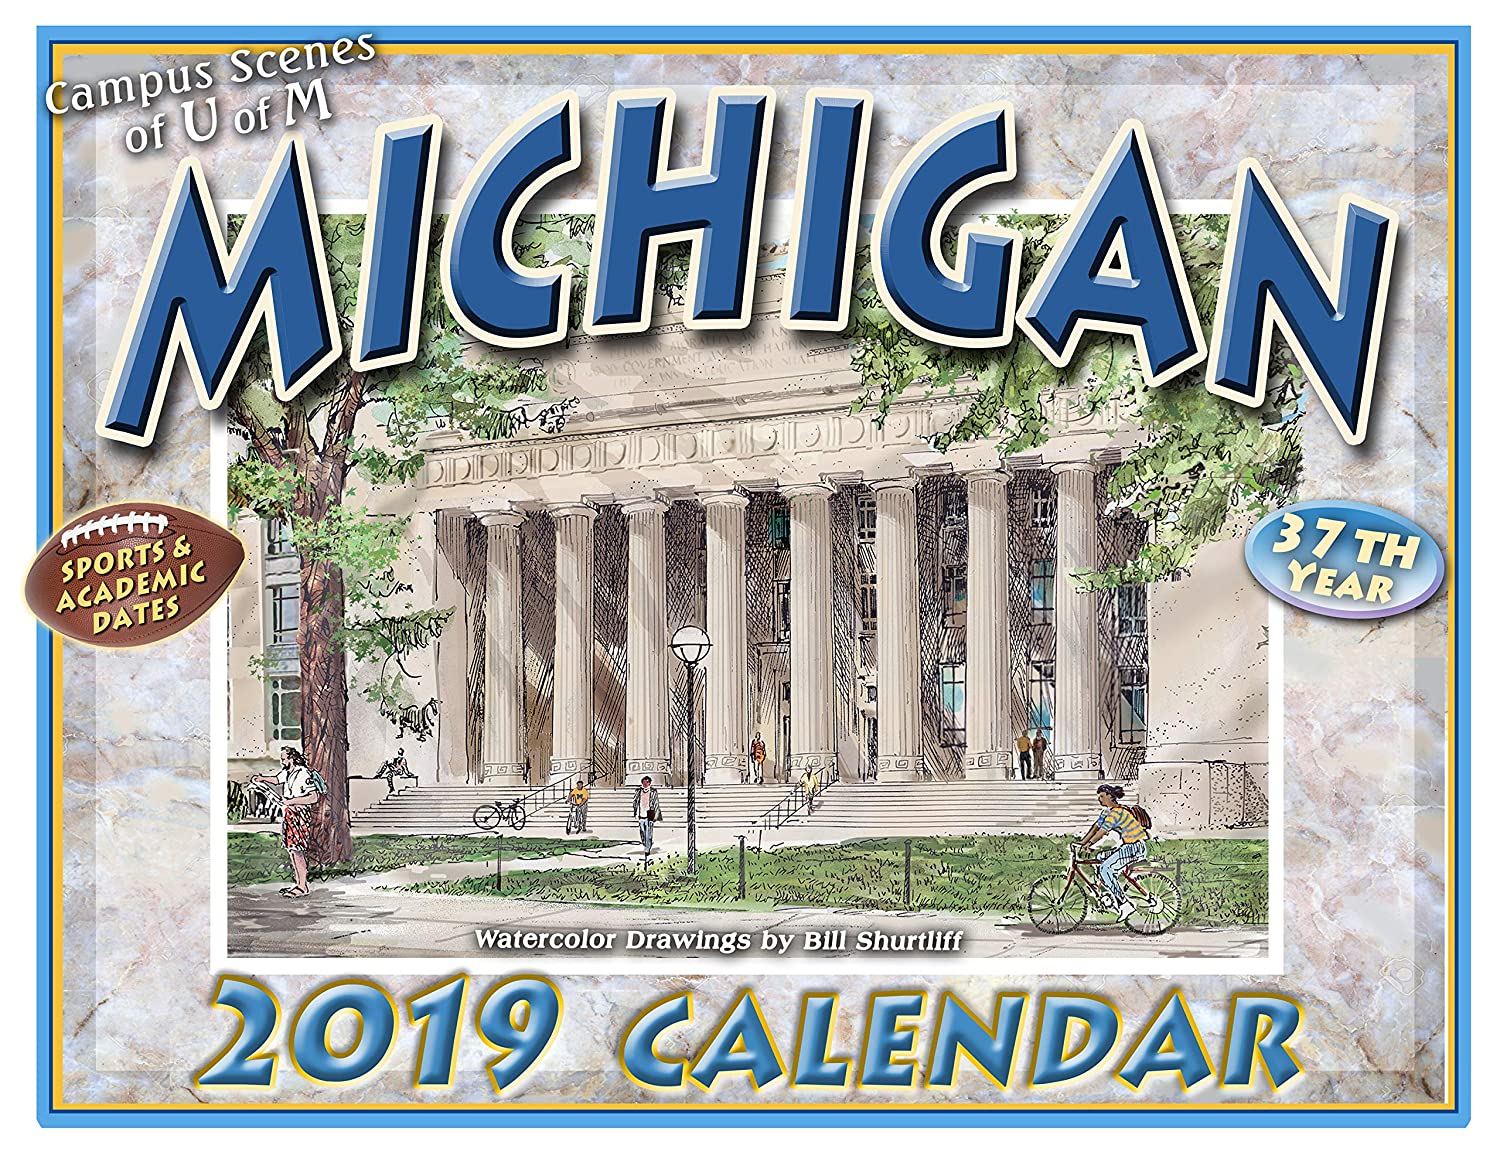 University Of Michigan Calendar 2019 Amazon.: University of Michigan 2019 Calendar : Office Products